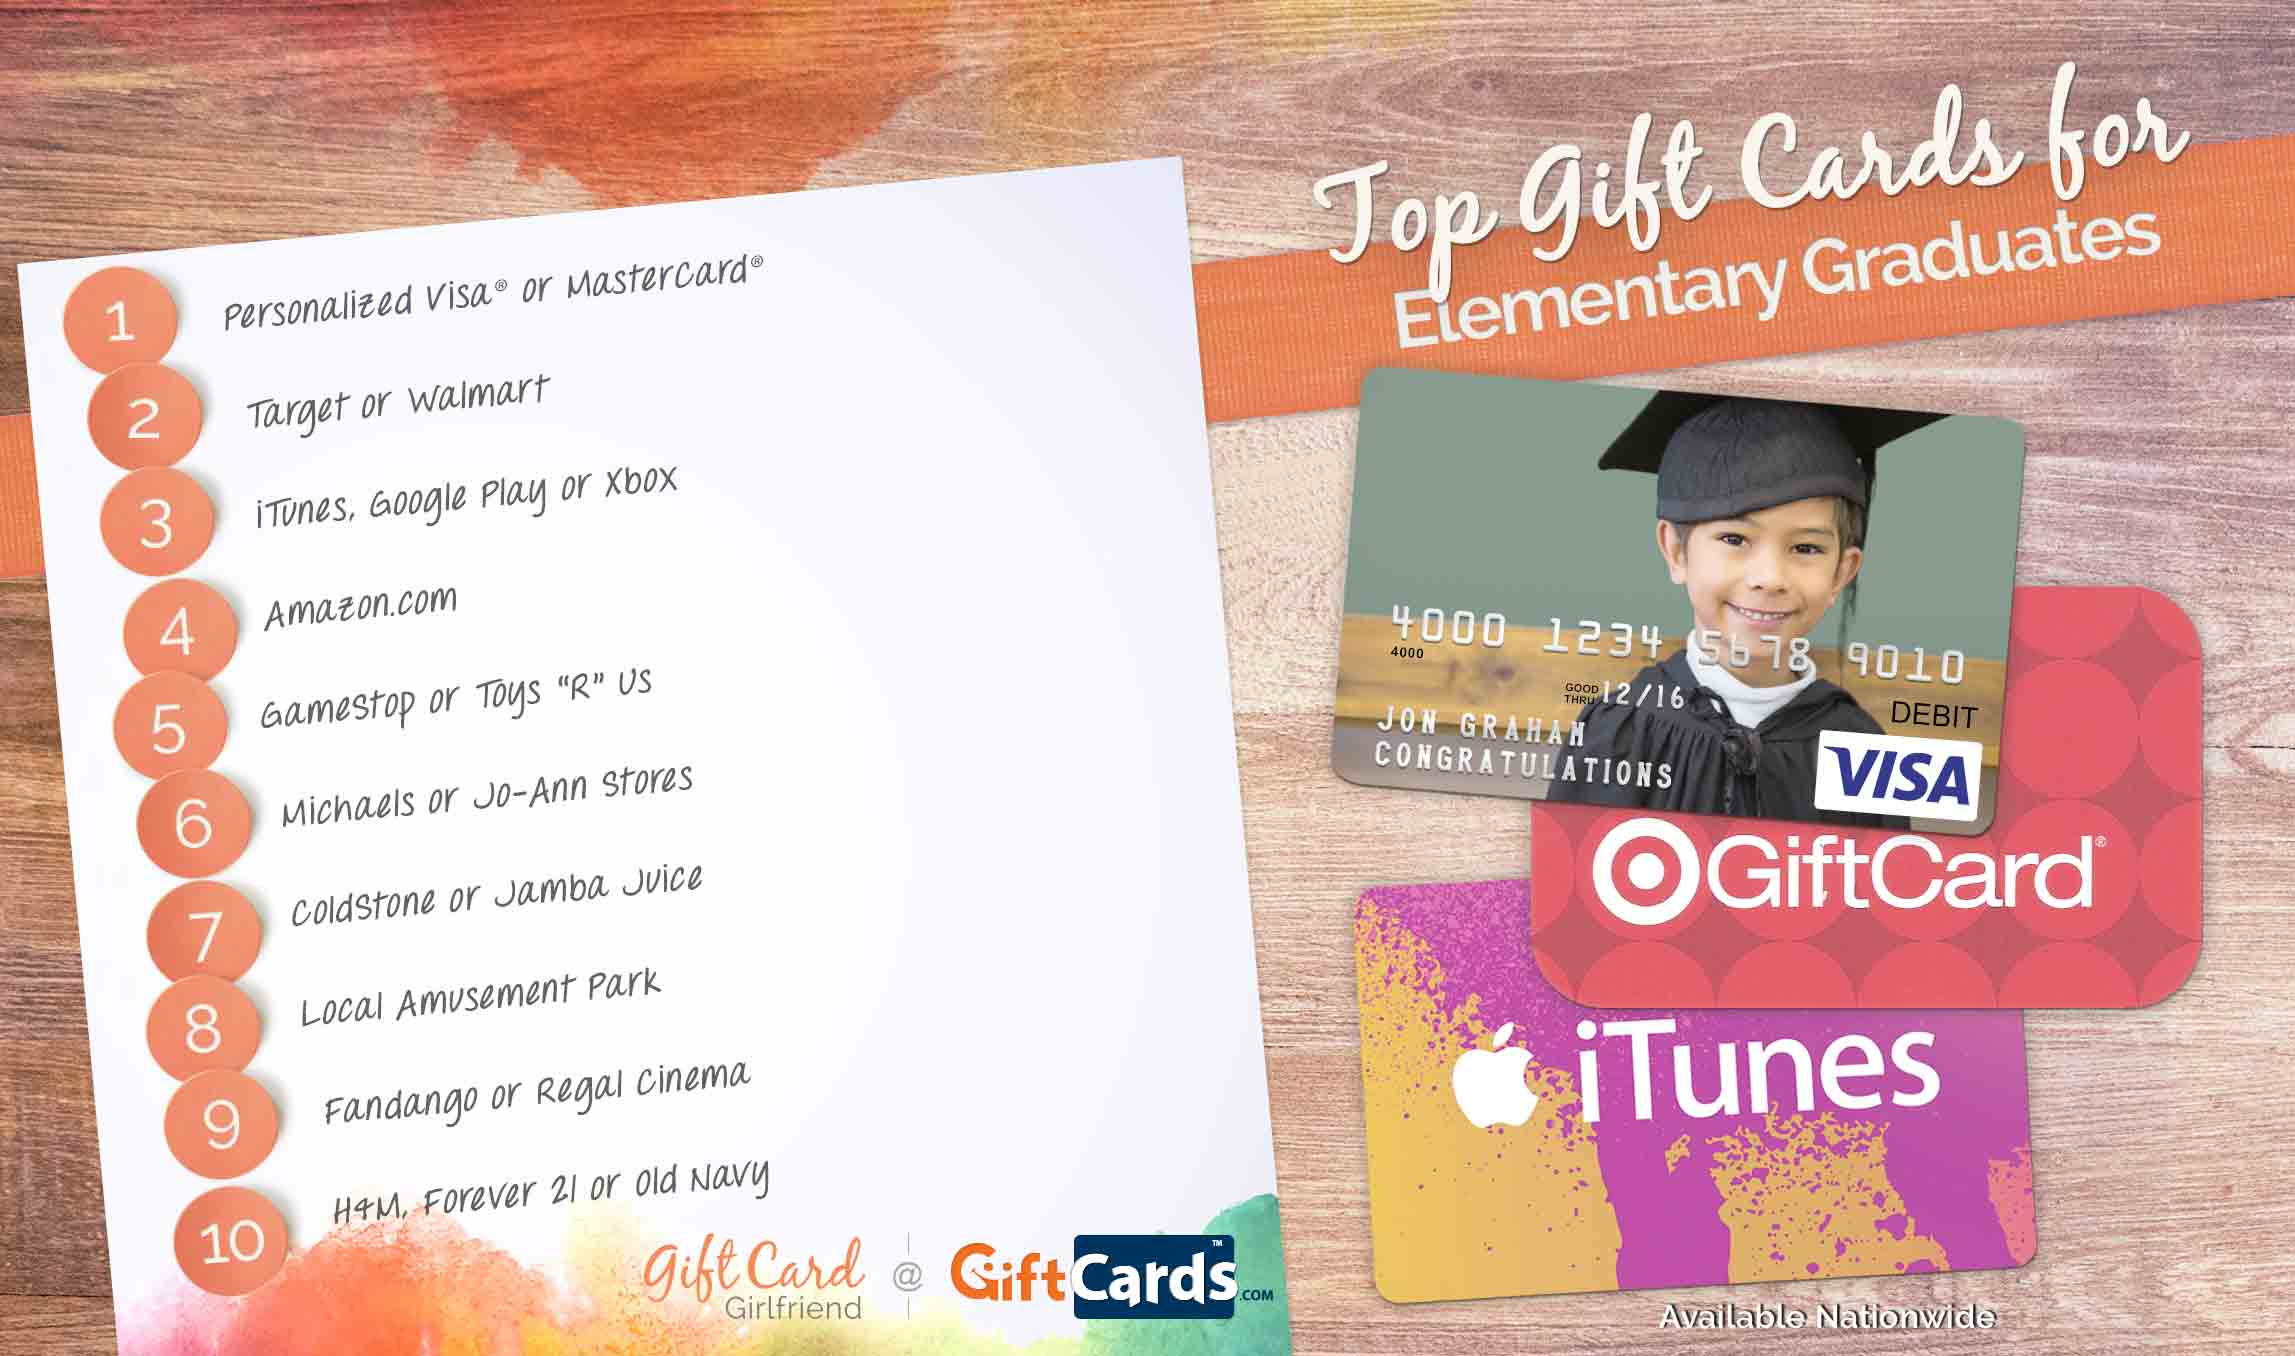 Top 10 gift cards for Elementary School graduates